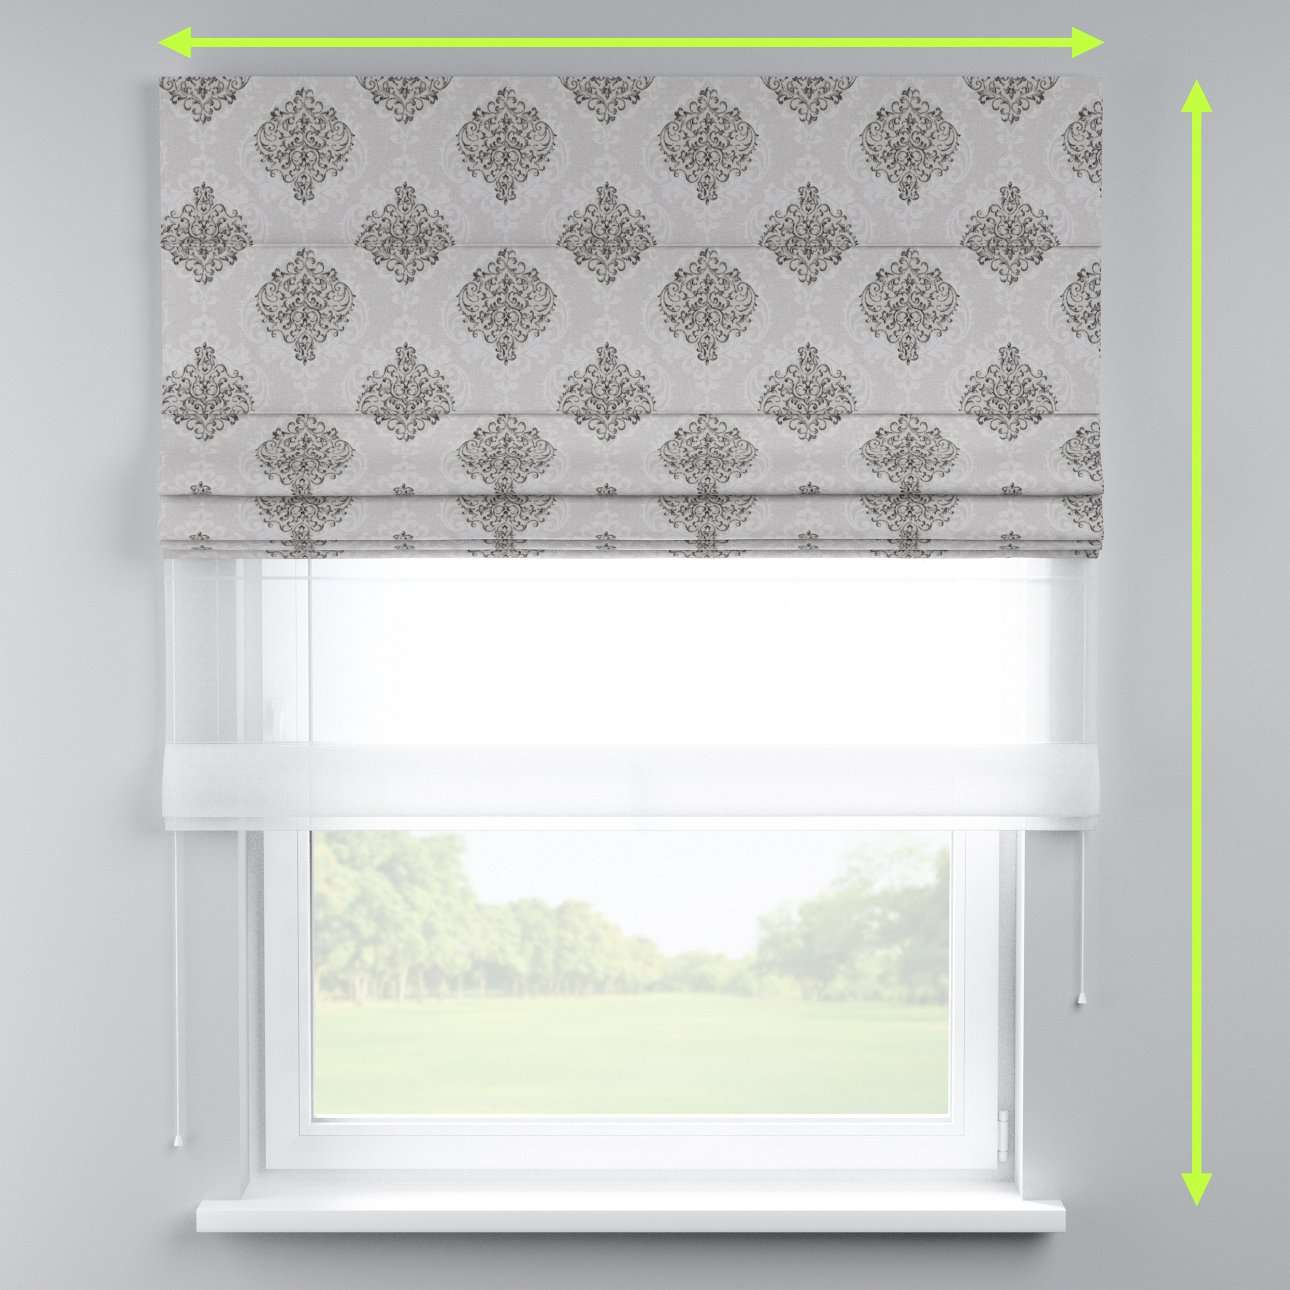 Voile and fabric roman blind (DUO II) in collection Rustica, fabric: 138-16